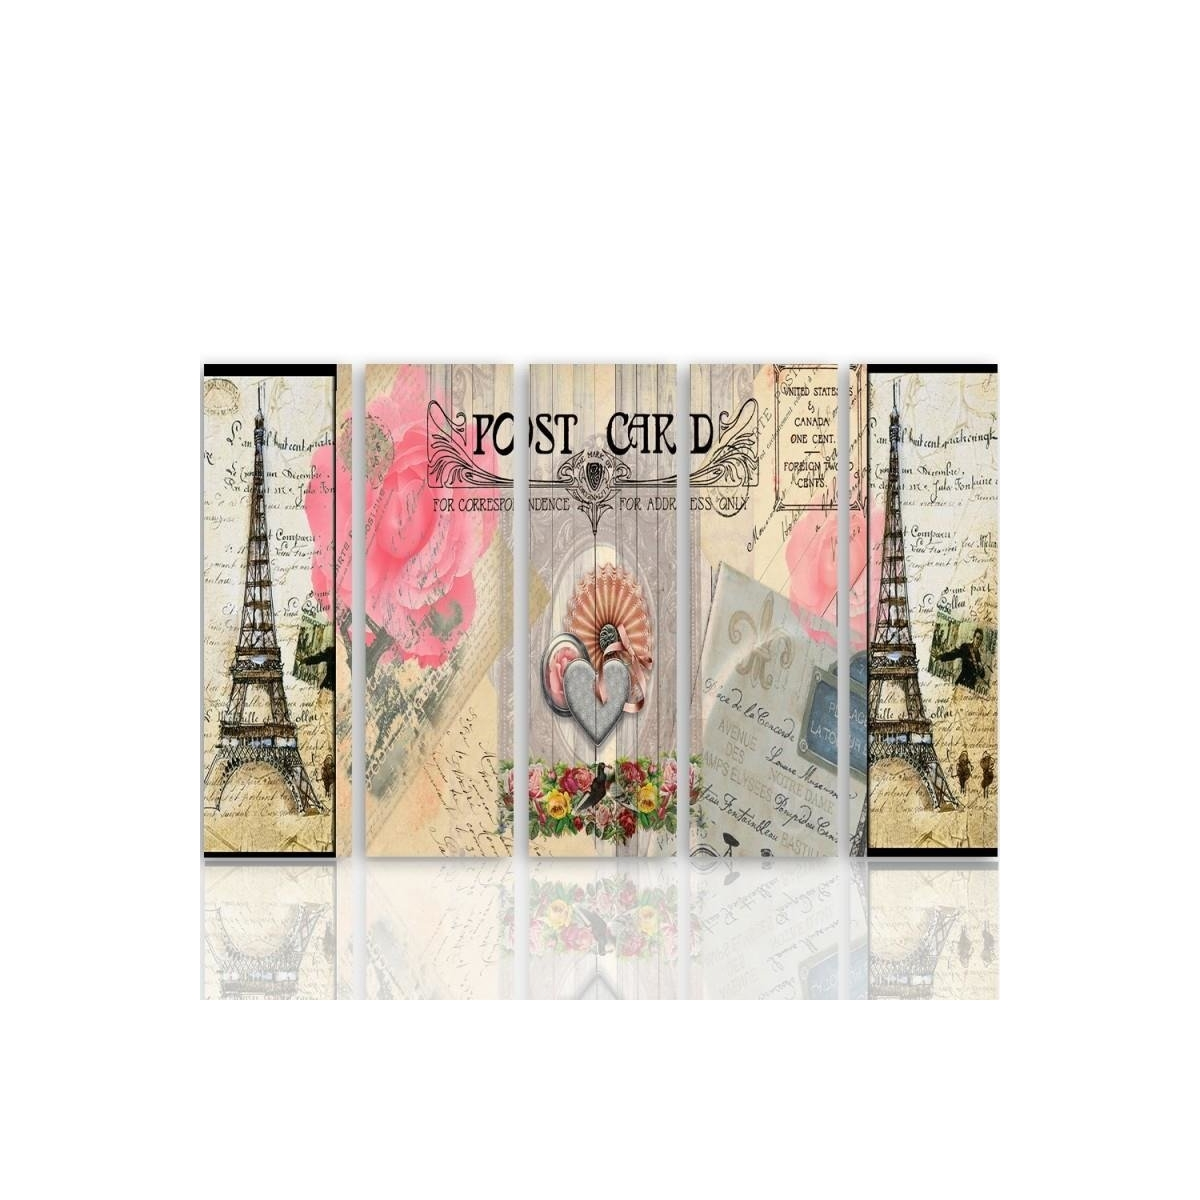 Five Part Picture On Canvas, Pentaptych, Type C, Postcard From Paris100x150